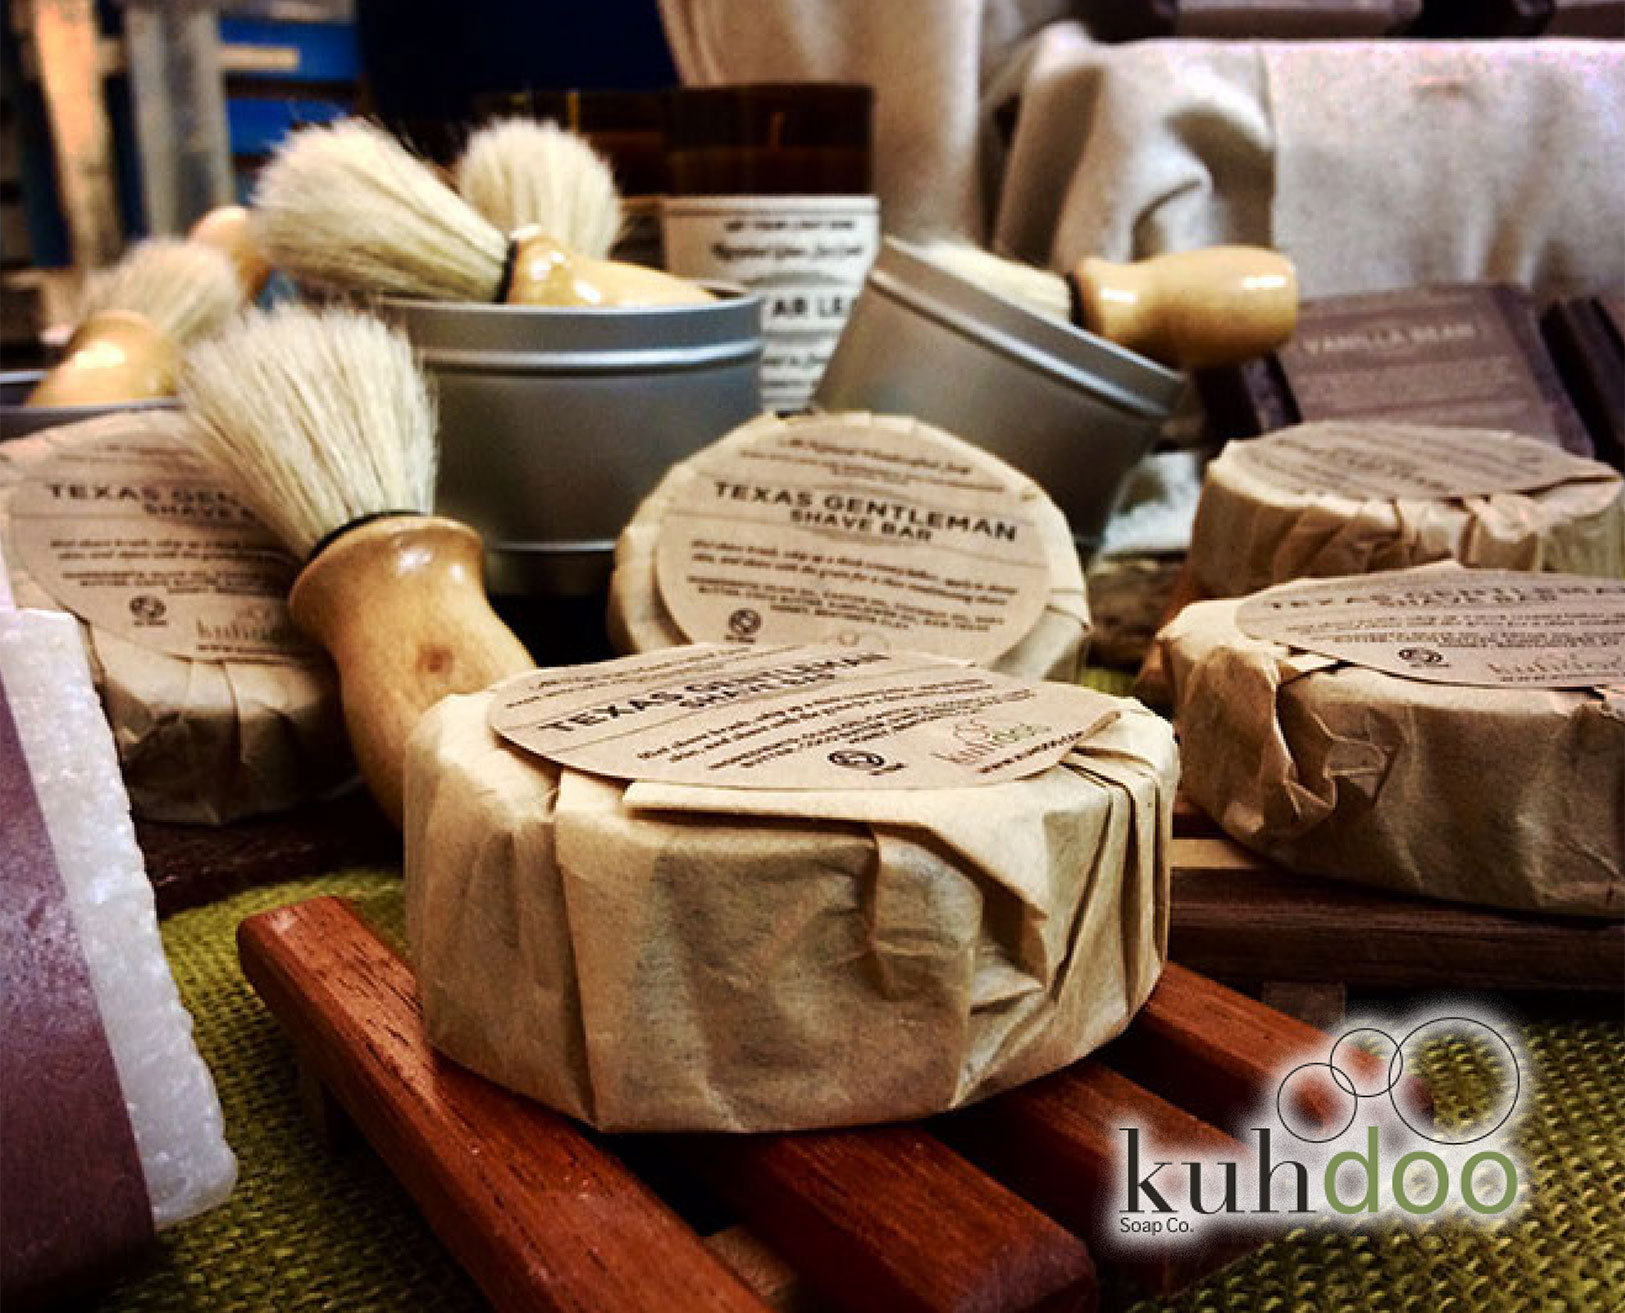 "Kuhdoo Soap Co.  ""MAKING SOAP IS A FUN FAMILY AFFAIR"" Hi! We're the Mangums. Jared, Kaysha, and Isaac. Making soap is a fun family affair for us, just on a whole different scale these days."